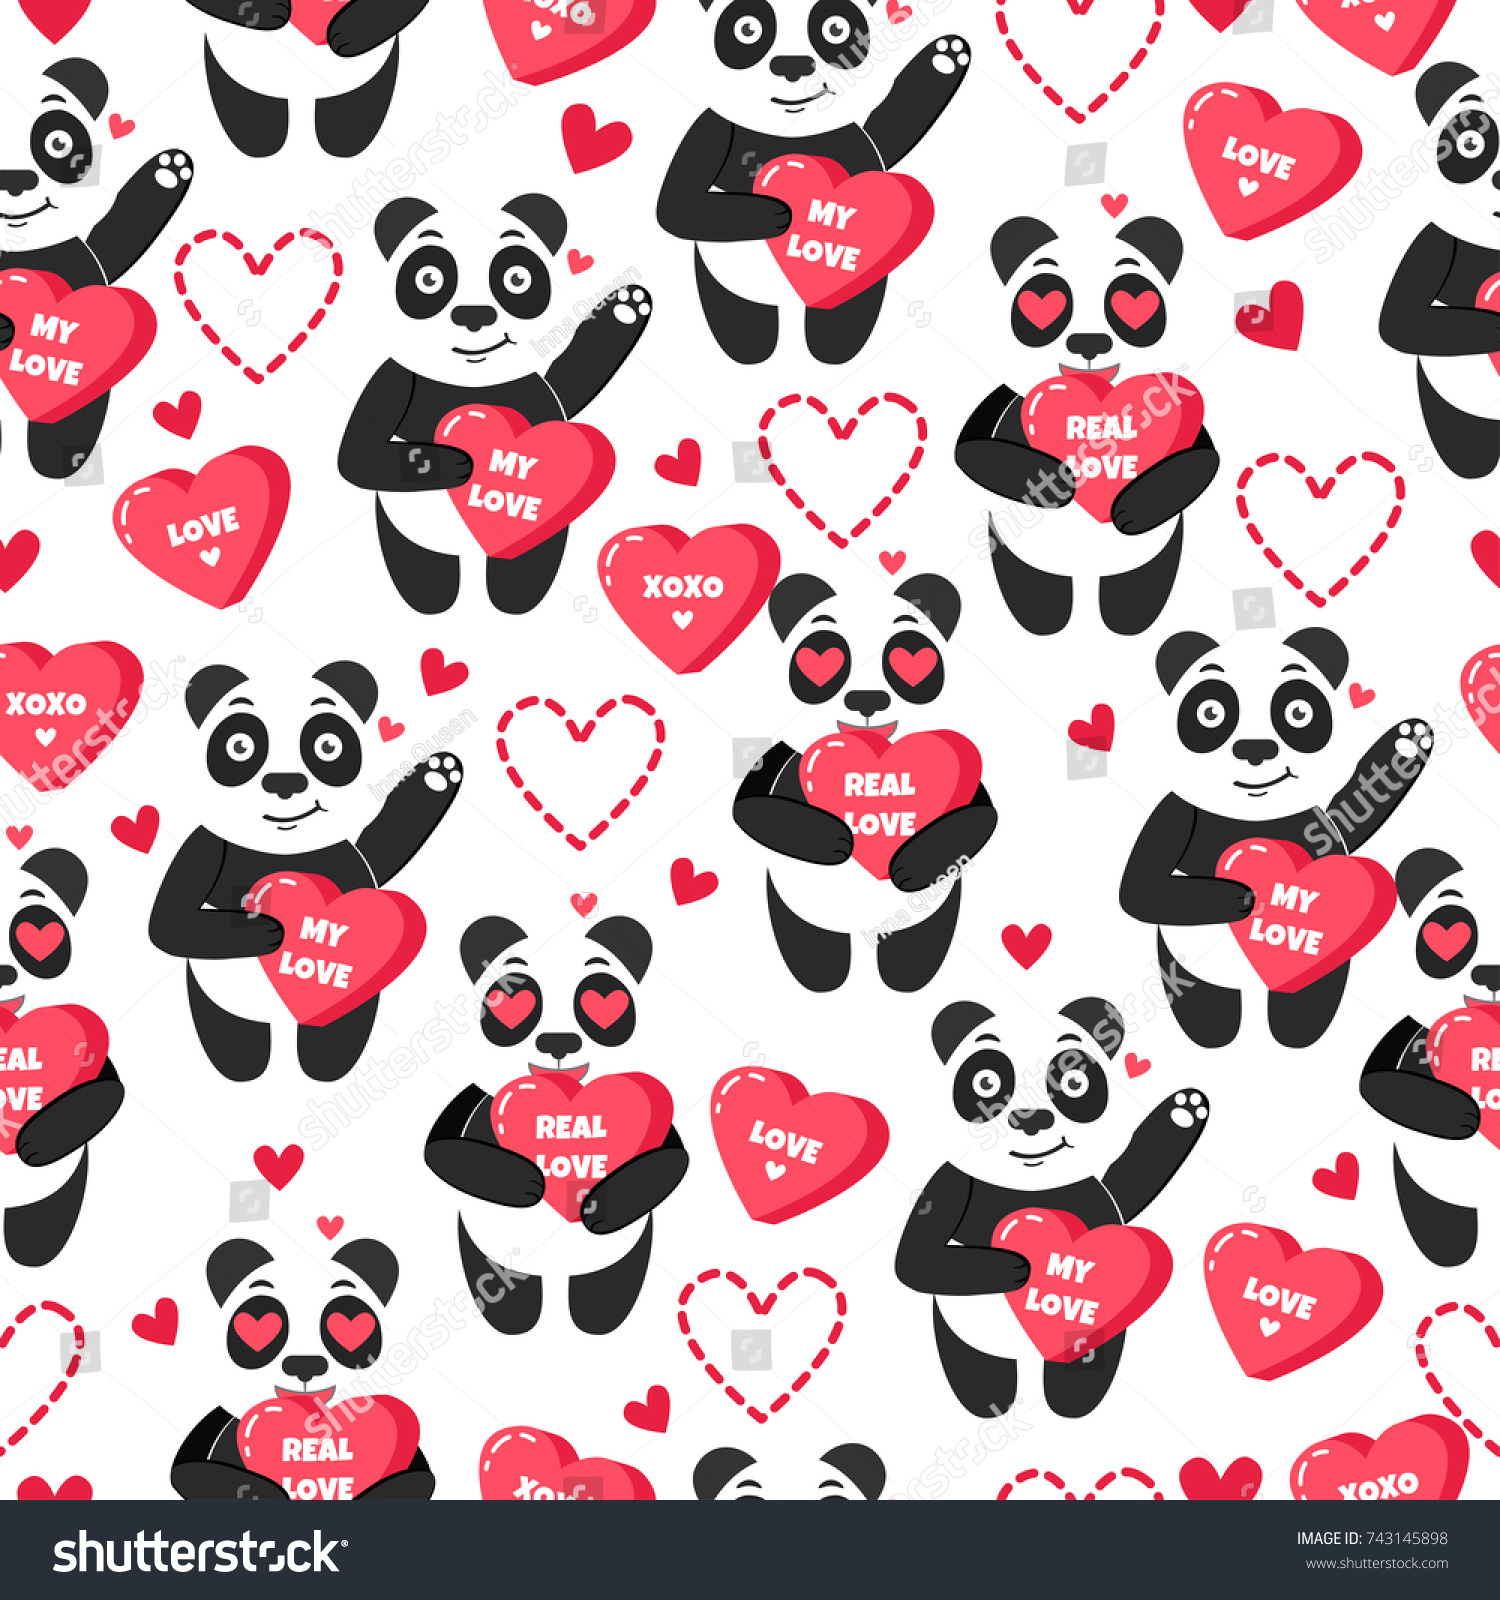 Cute vector background panda sweet hearts stock vector 743145898 cute vector background with panda sweet hearts and love happy valentines day holiday thecheapjerseys Images